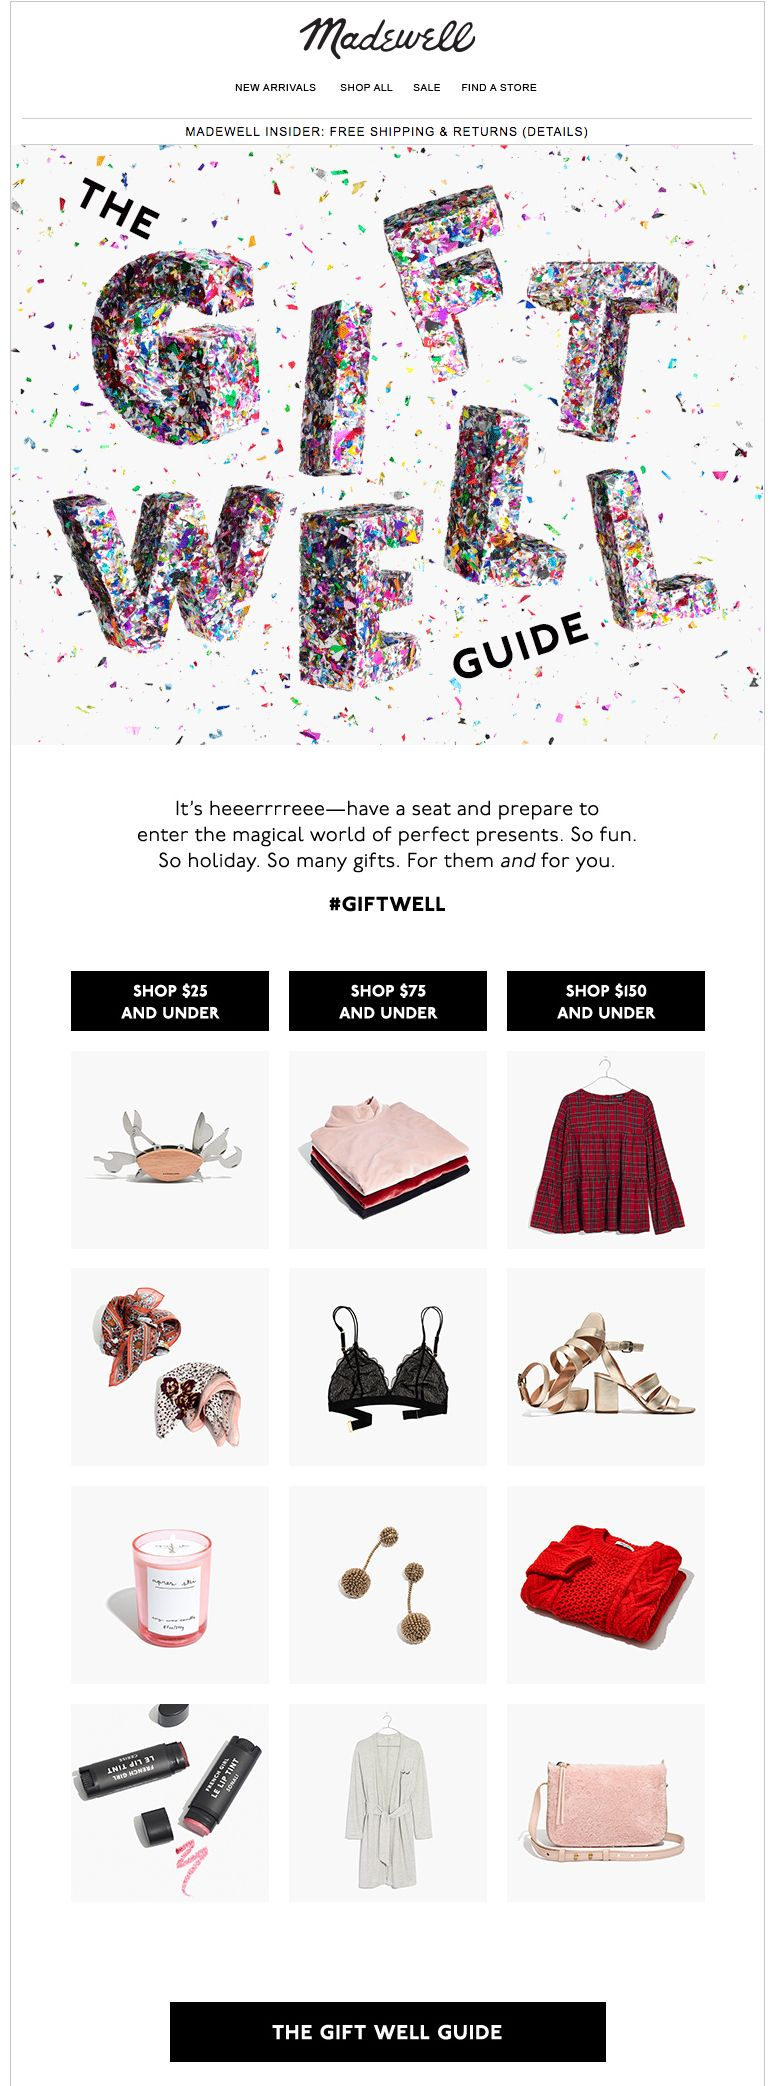 Madewell Gift Guide Email It S Heeerrre The Gift Well Guide